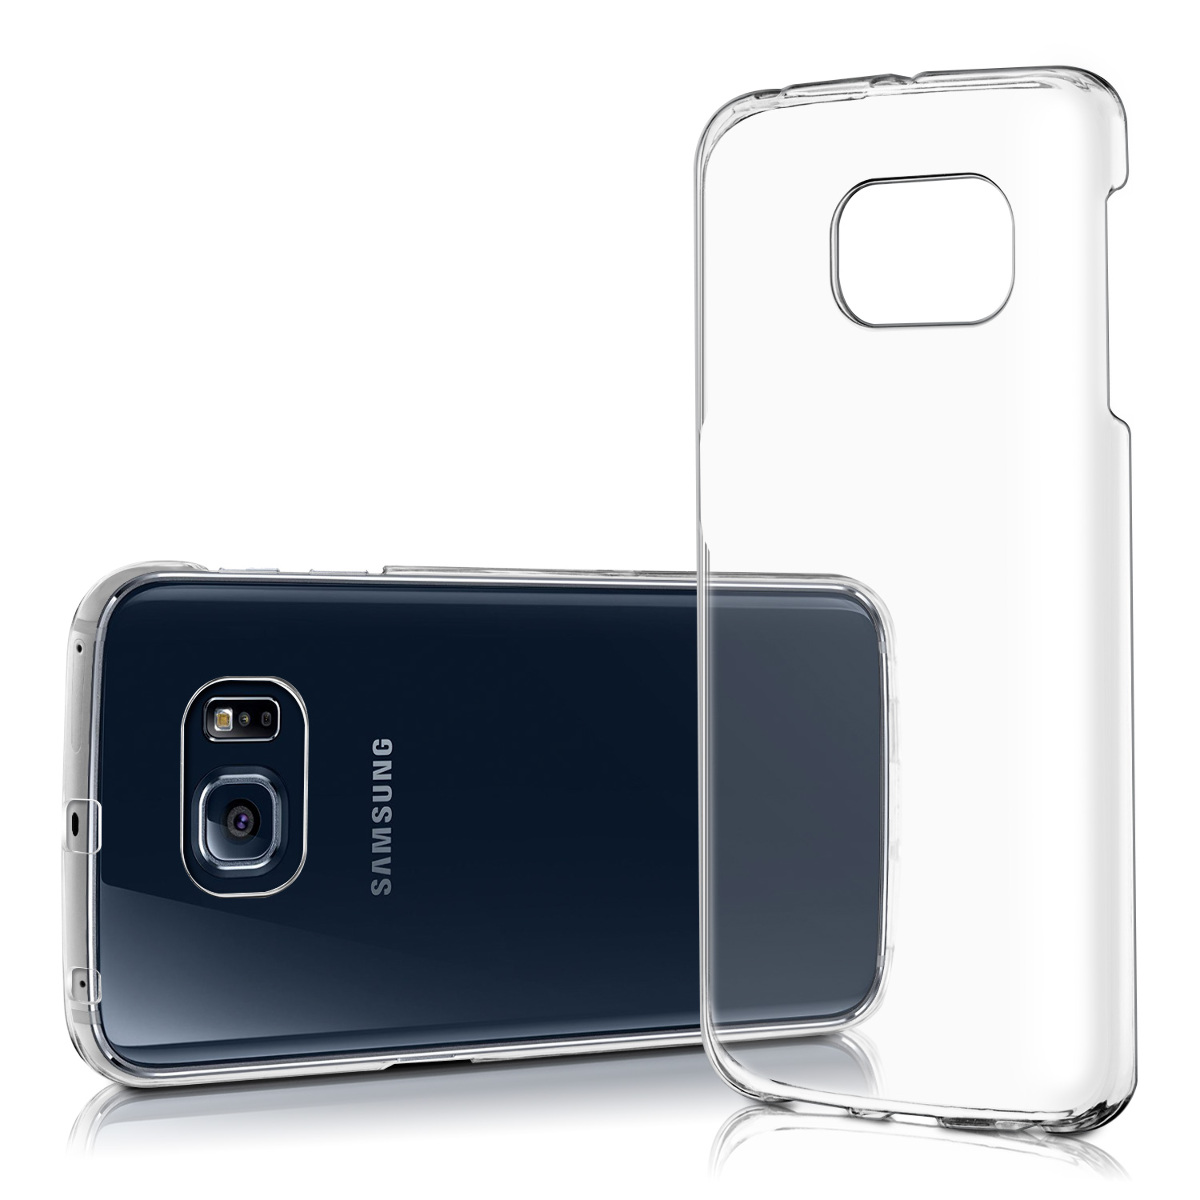 HARD-CASE-CRYSTAL-FUR-SAMSUNG-GALAXY-S6-EDGE-TRANSPARENT-HANDY-HULLE-COVER